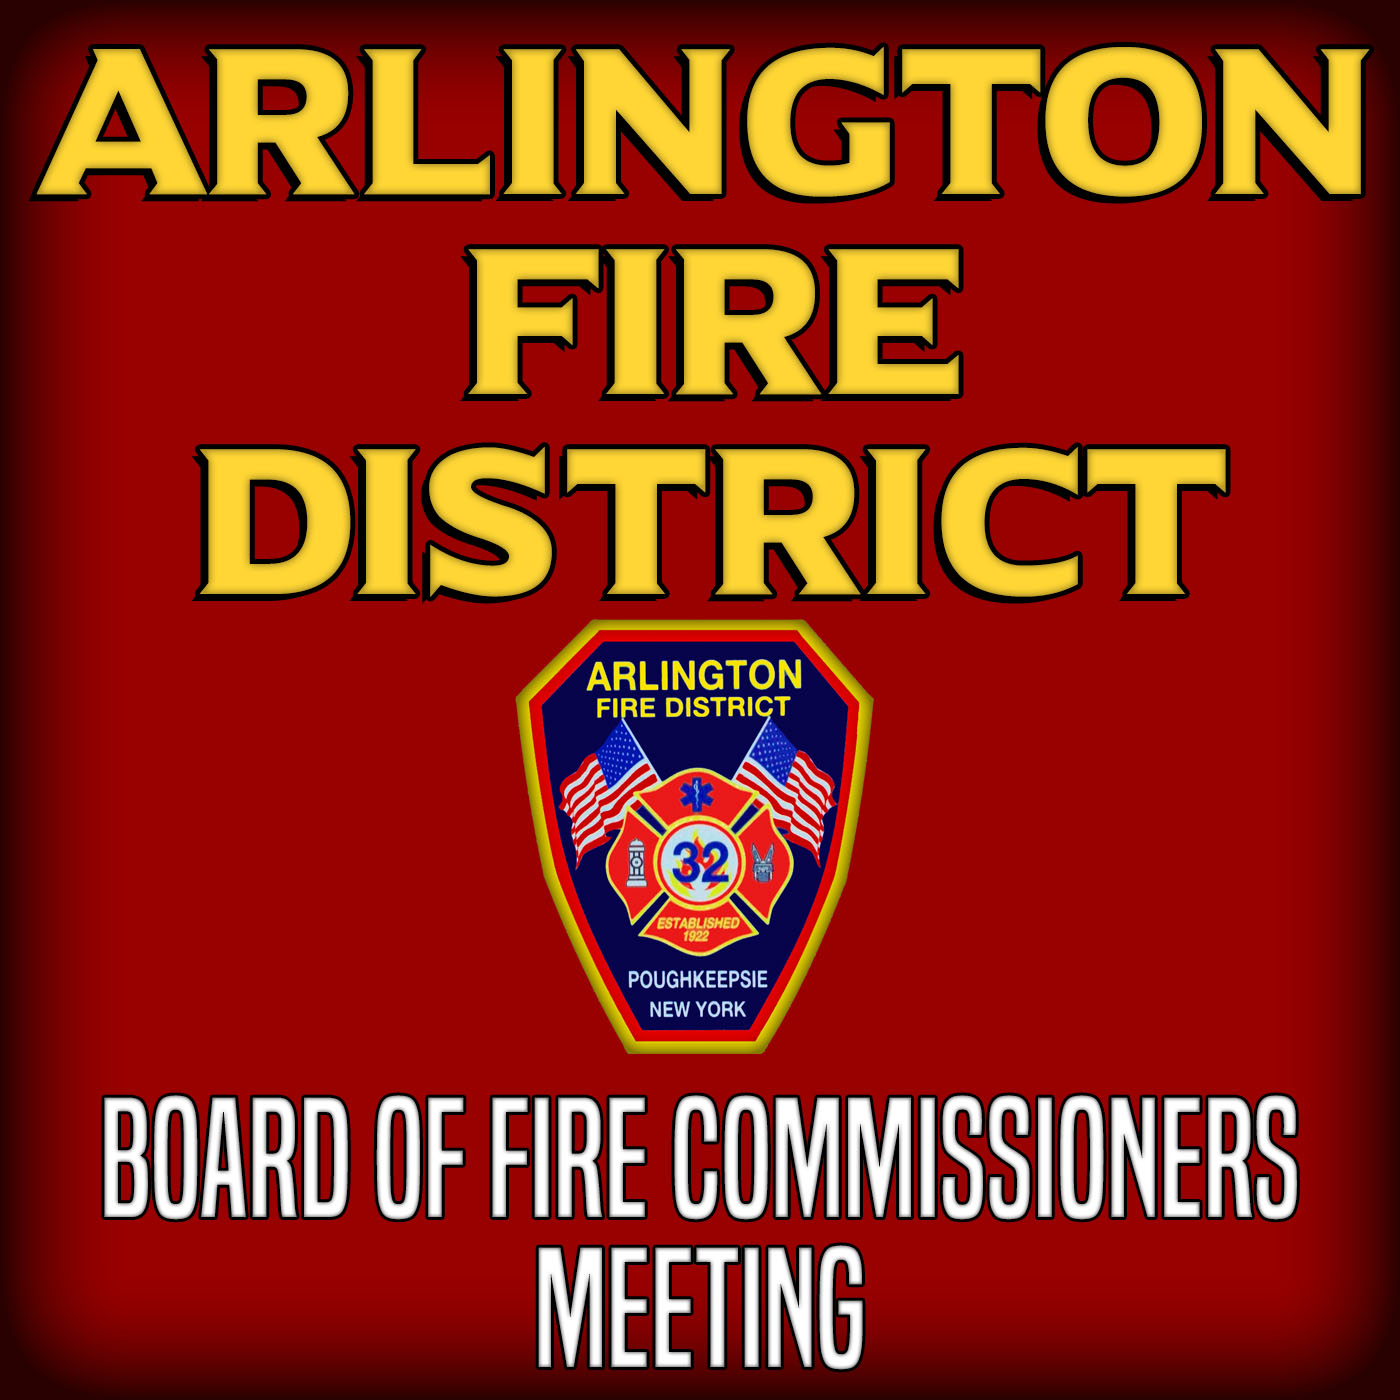 Arlington Fire District : Board of Fire Commissioners Meetings show art